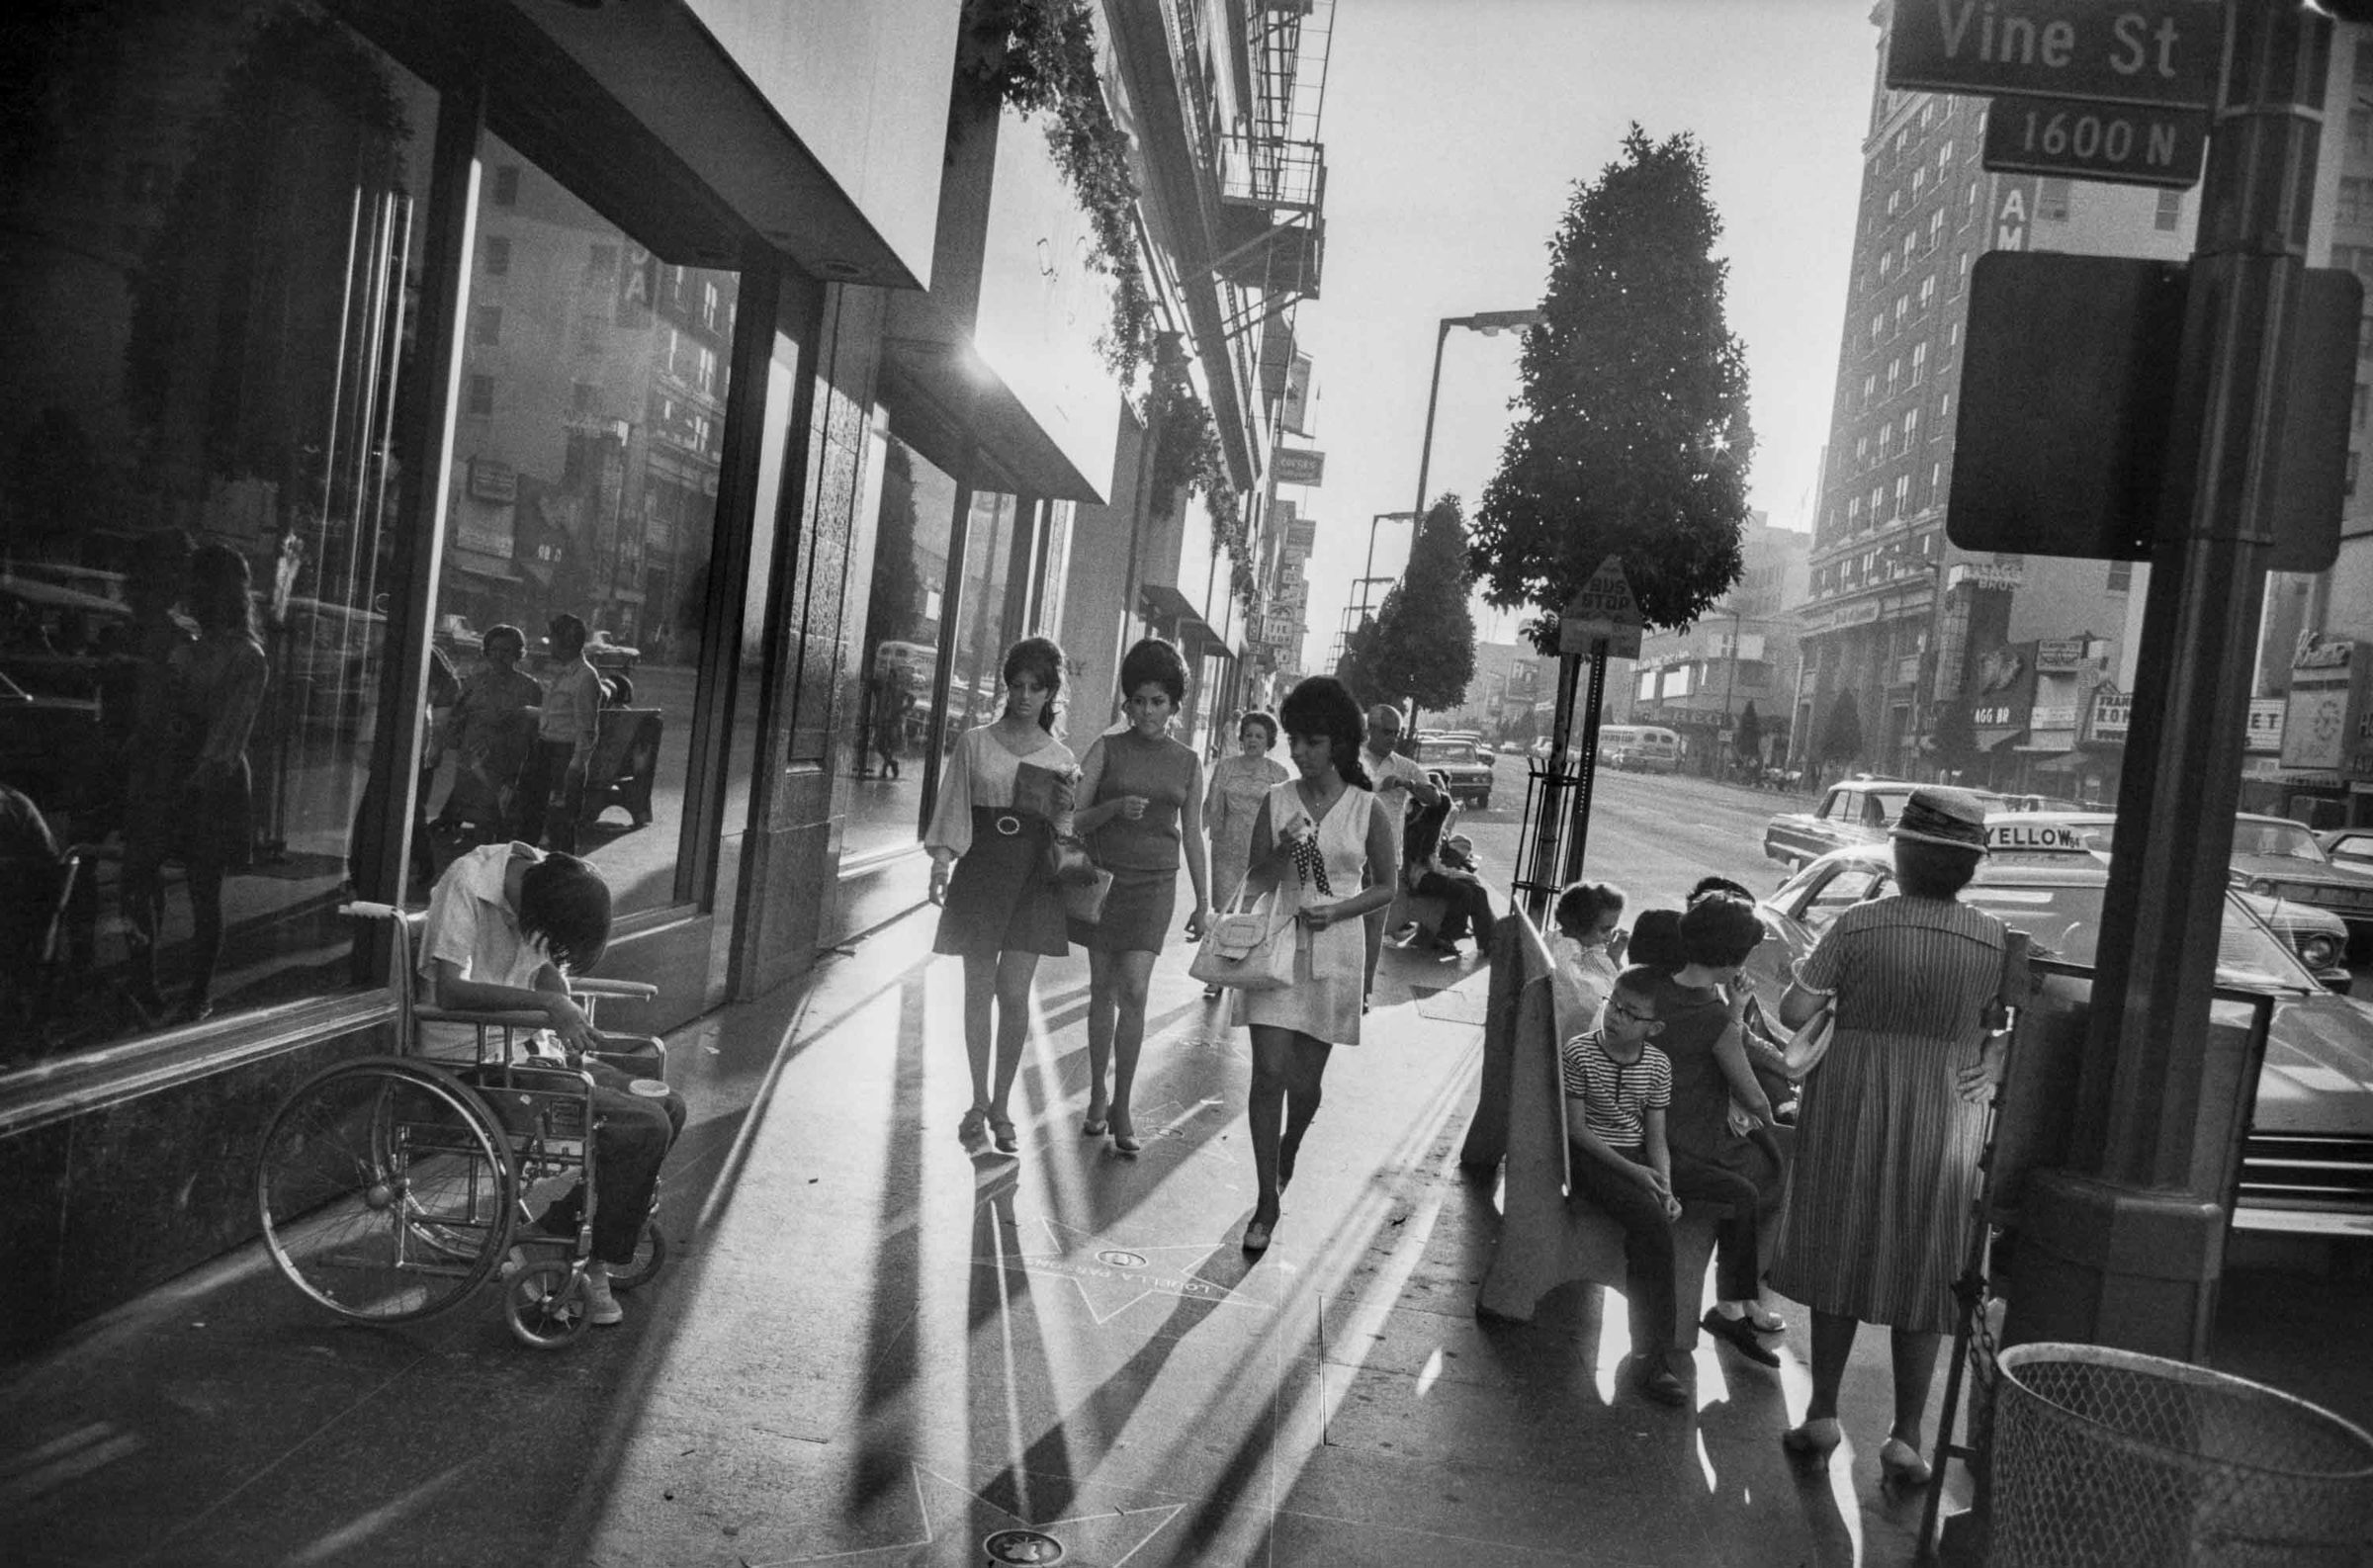 Garry Winogrand, Los Angeles, California, 1969. Gelatin silver print, 21.6 × 32.8 cm. Art Gallery of Ontario, Purchase, with funds generously donated by Martha LA McCain, 2015. © The Estate of Garry Winogrand, courtesy Fraenkel Gallery, San Francisco 2014/1569.11.